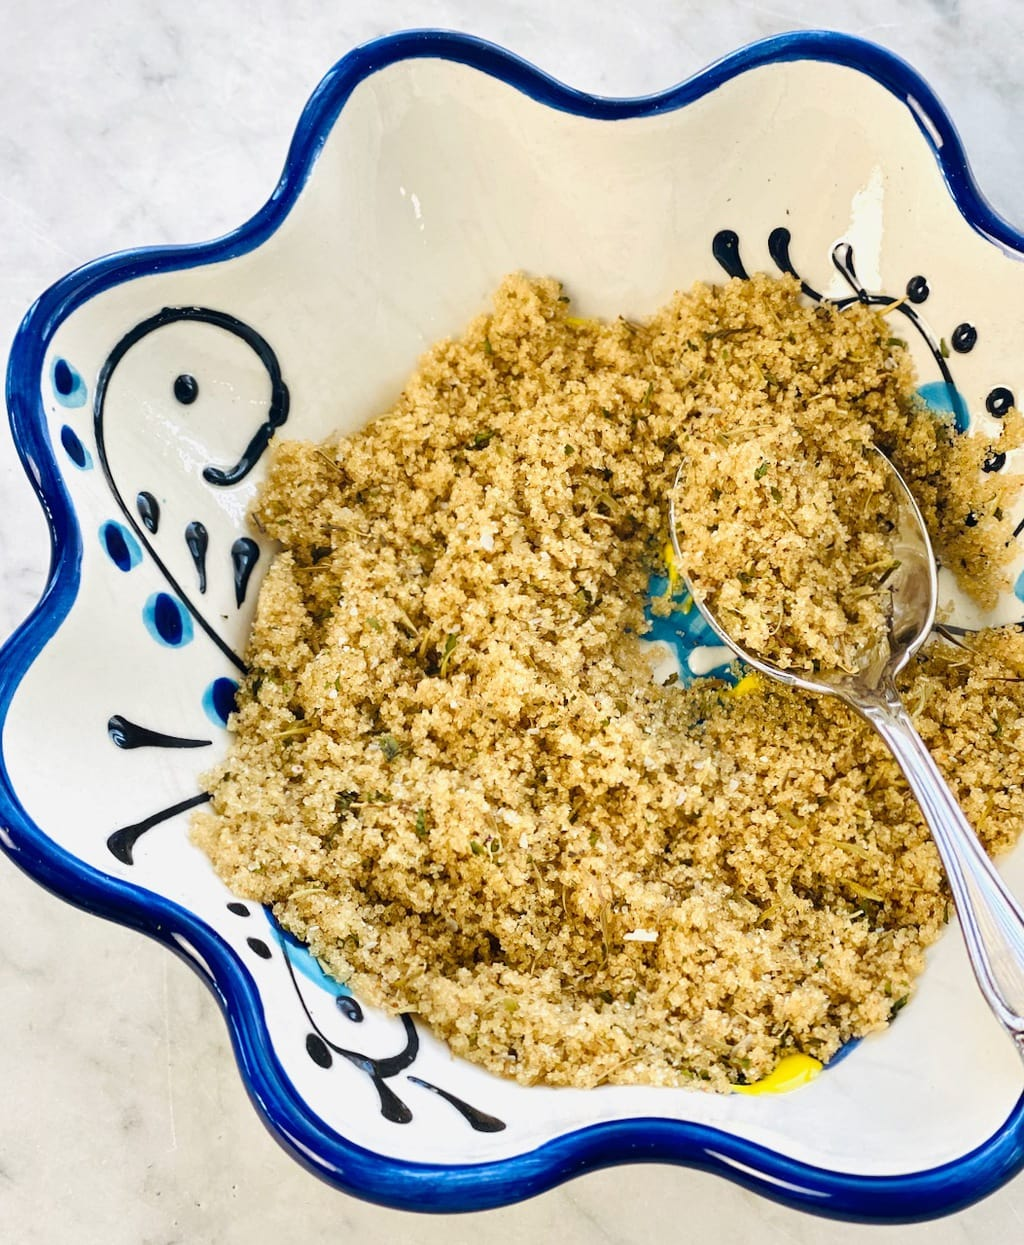 topping of brown sugar and spices in a blue rimmed bowl.